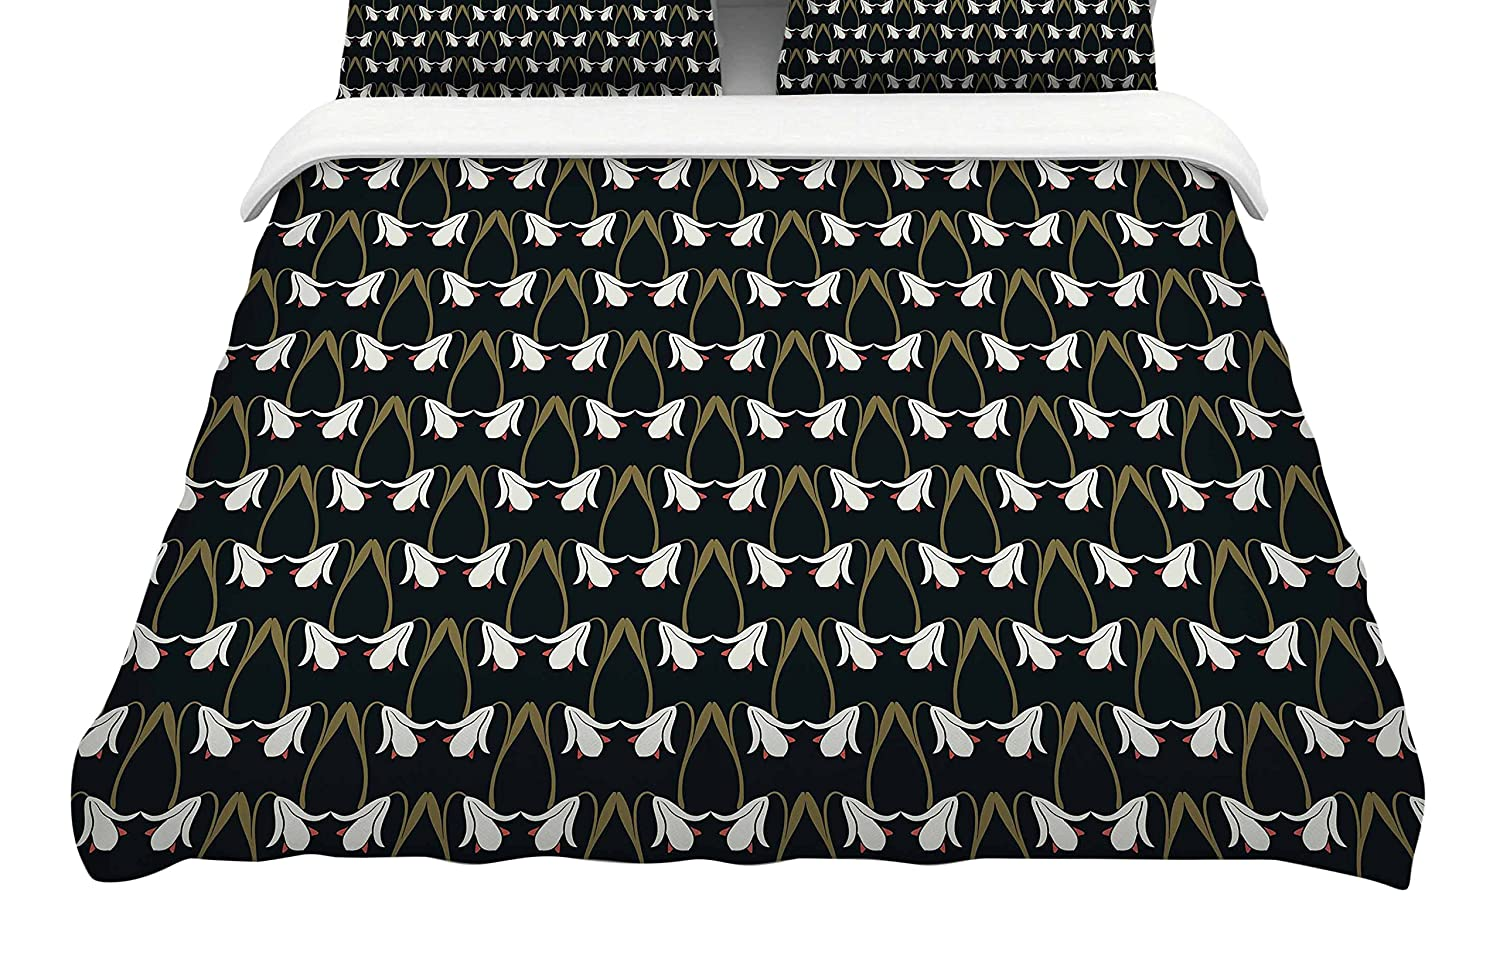 104 x 88 Kess InHouse Pom Graphic Design Bohemian Succulents II Gold White Floral King Featherweight Duvet Cover